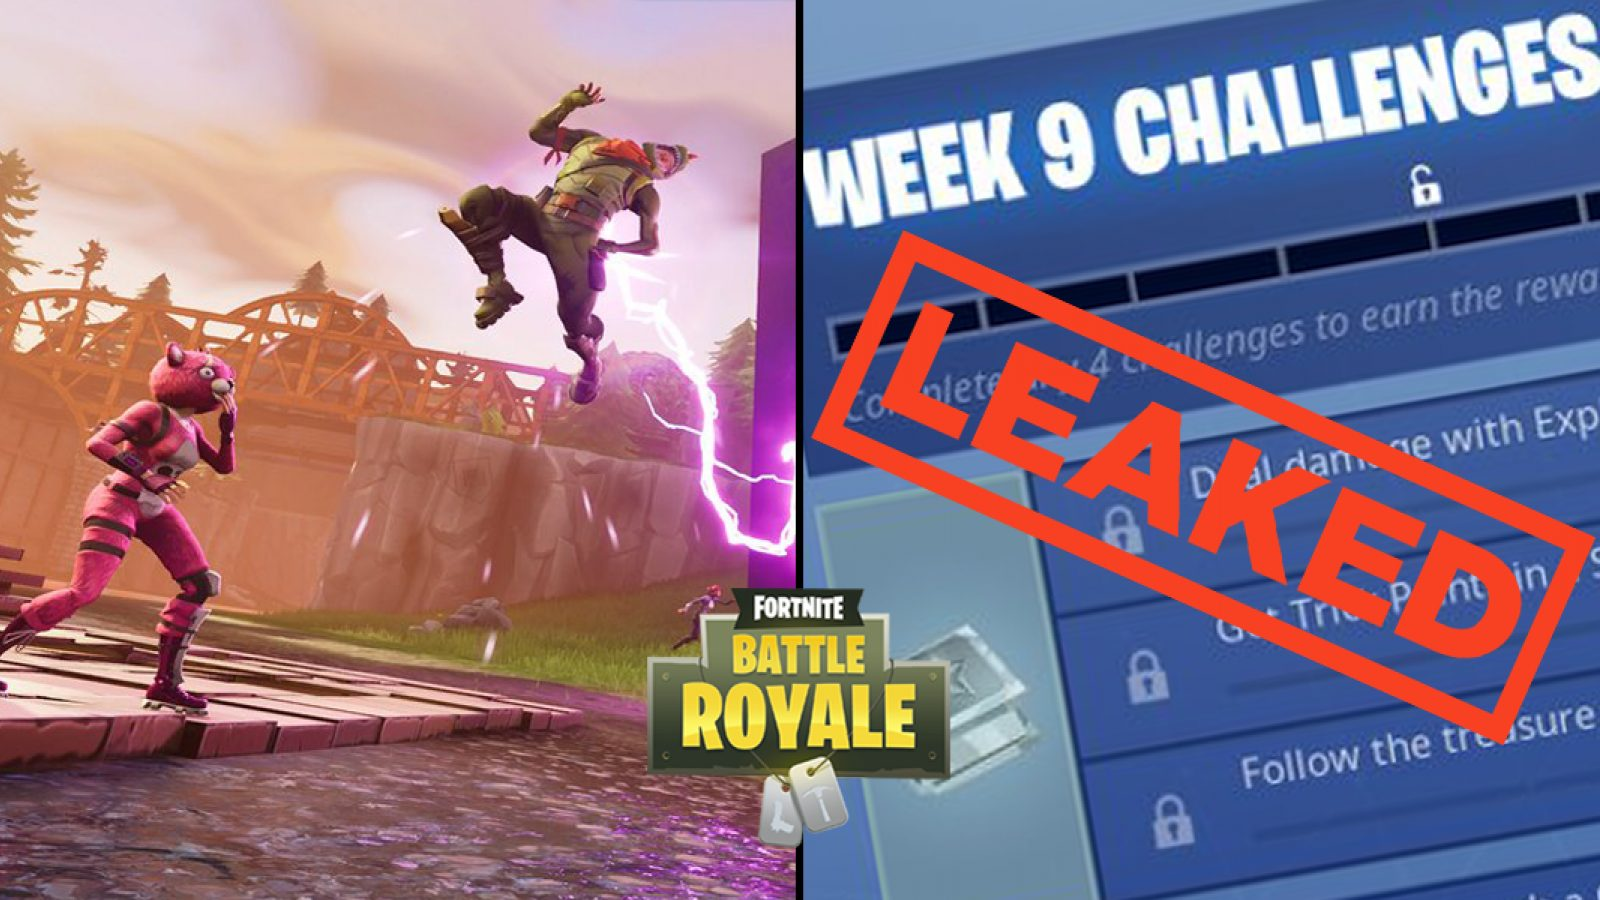 Fortnite Challenges for Week 9 of Season 5 Have Been Leaked 1600x900